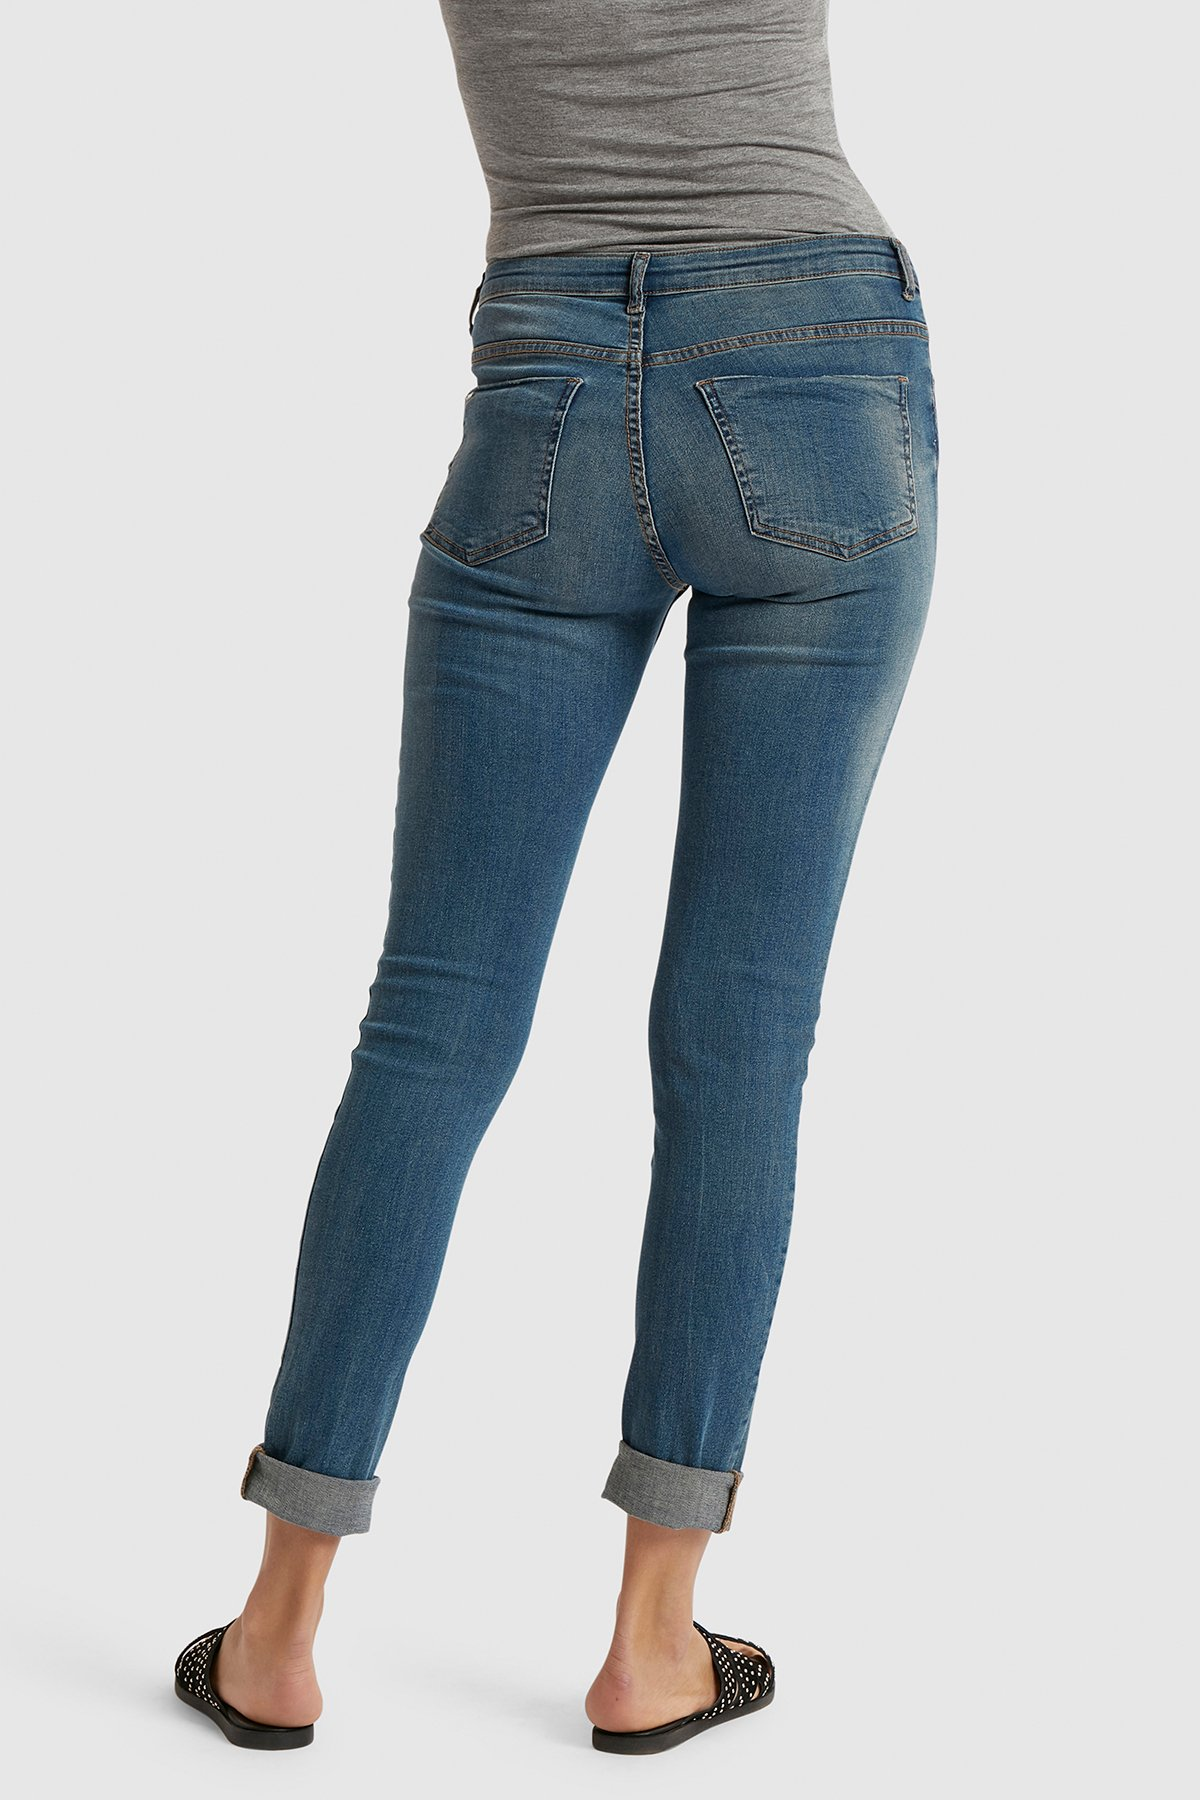 Antique Blue Lola luni Jeans fra b.young – Køb Antique Blue Lola luni Jeans fra str. 25-36 her